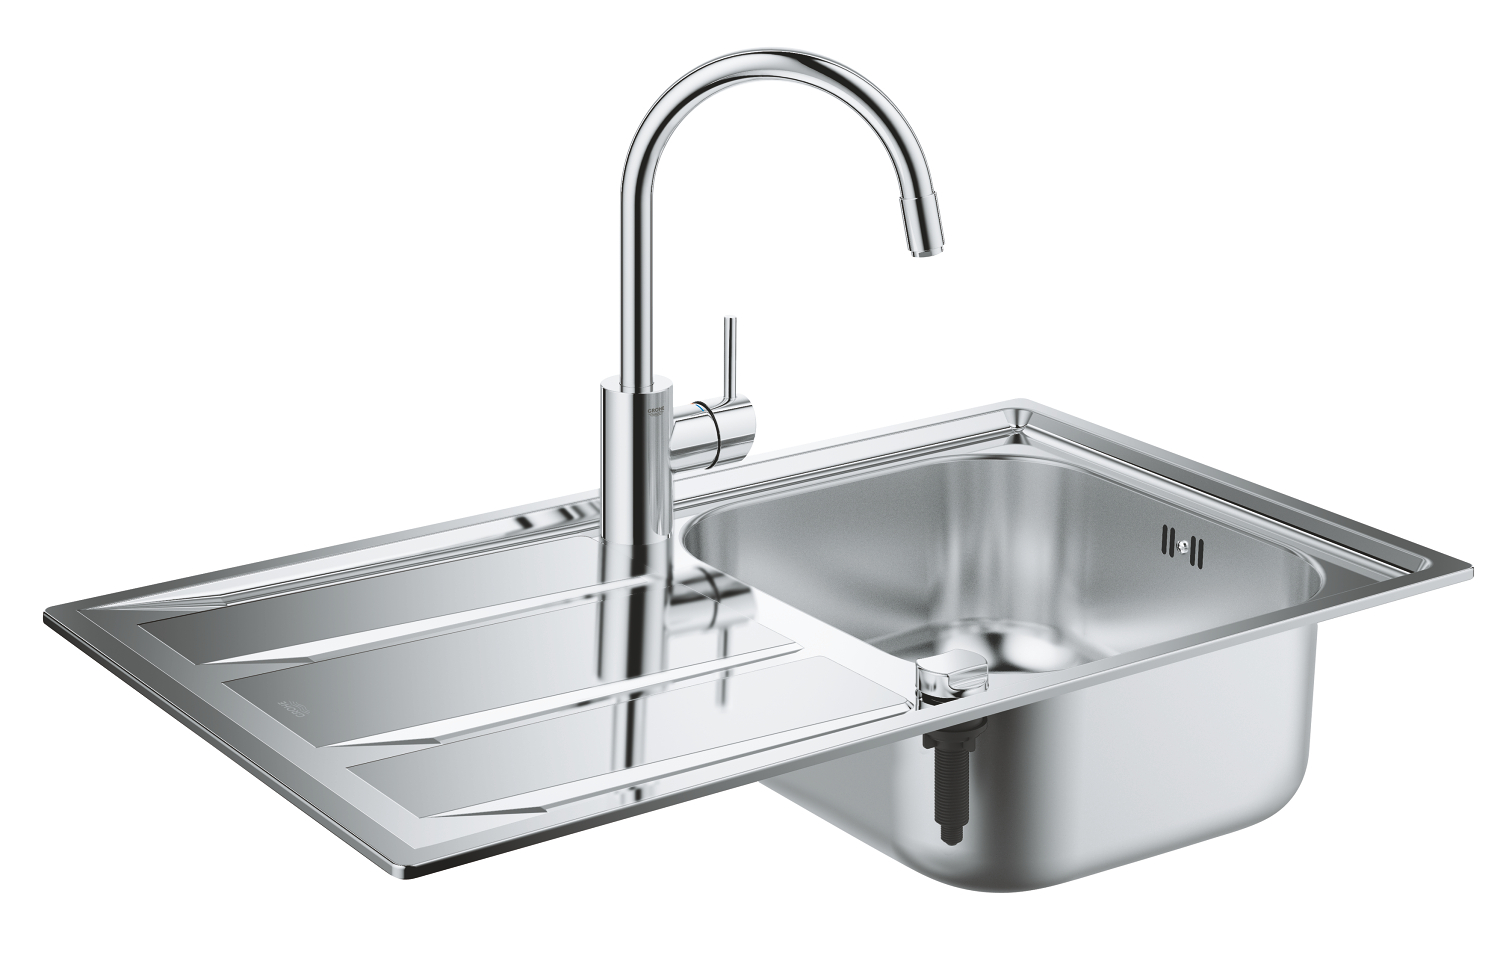 Grohe Concetto K400 31570SD0